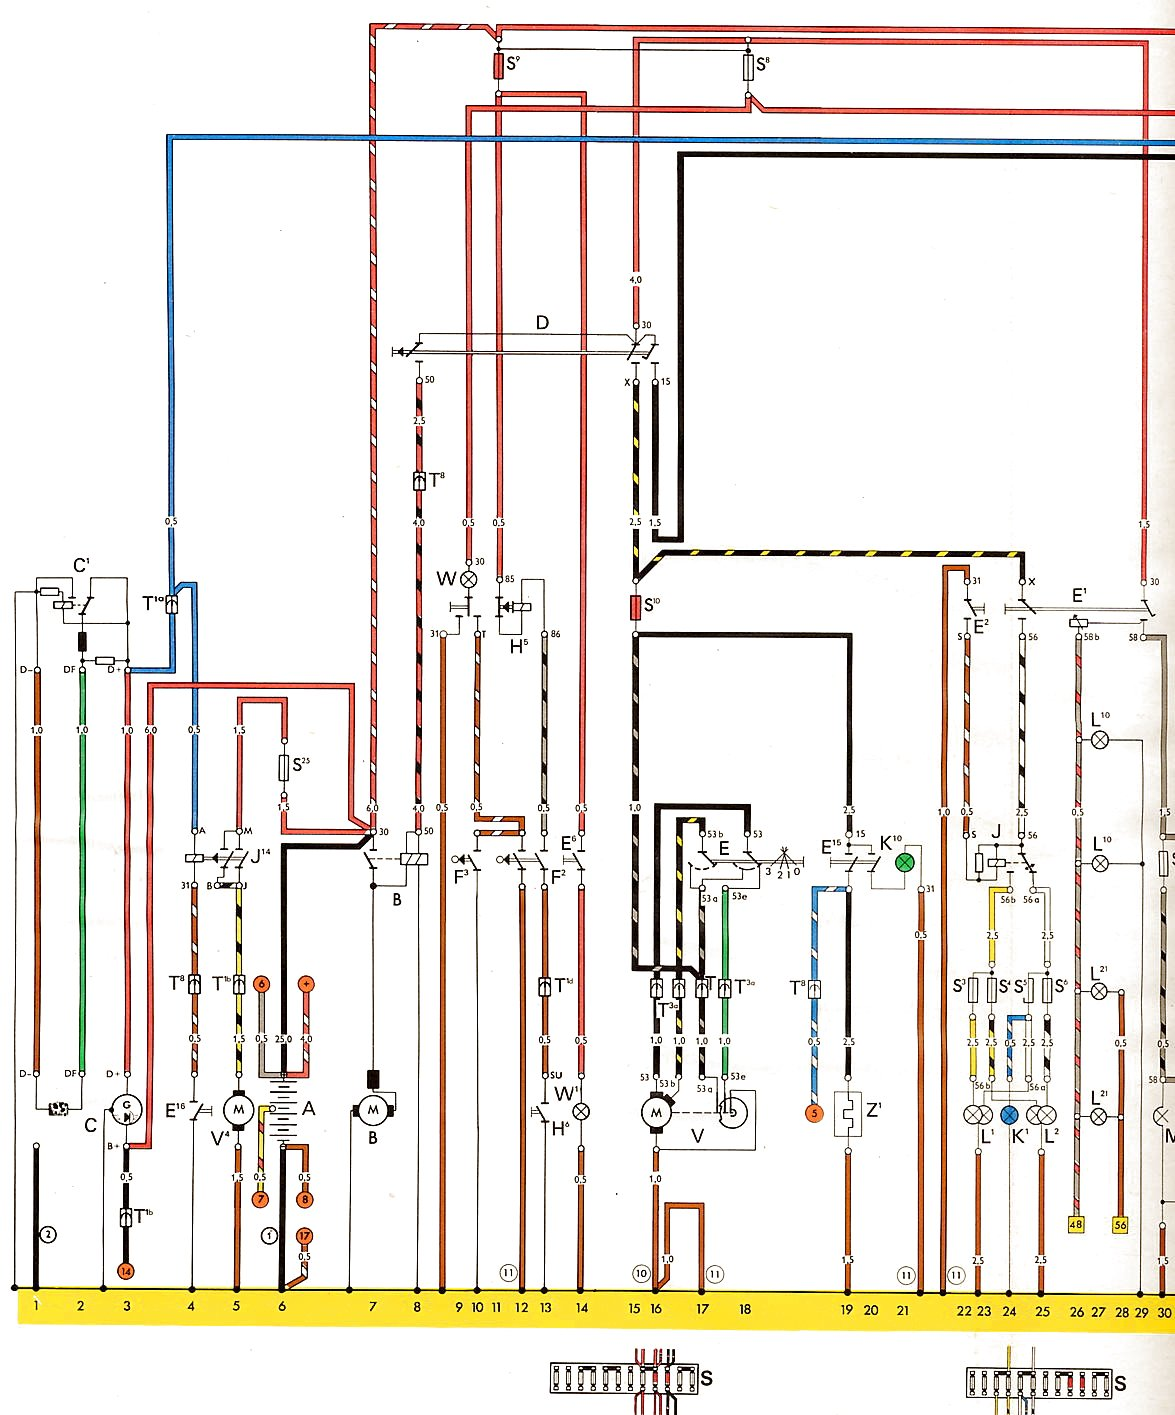 t1 crossover cable diagram trailer air bag suspension rj45 wiring rj12